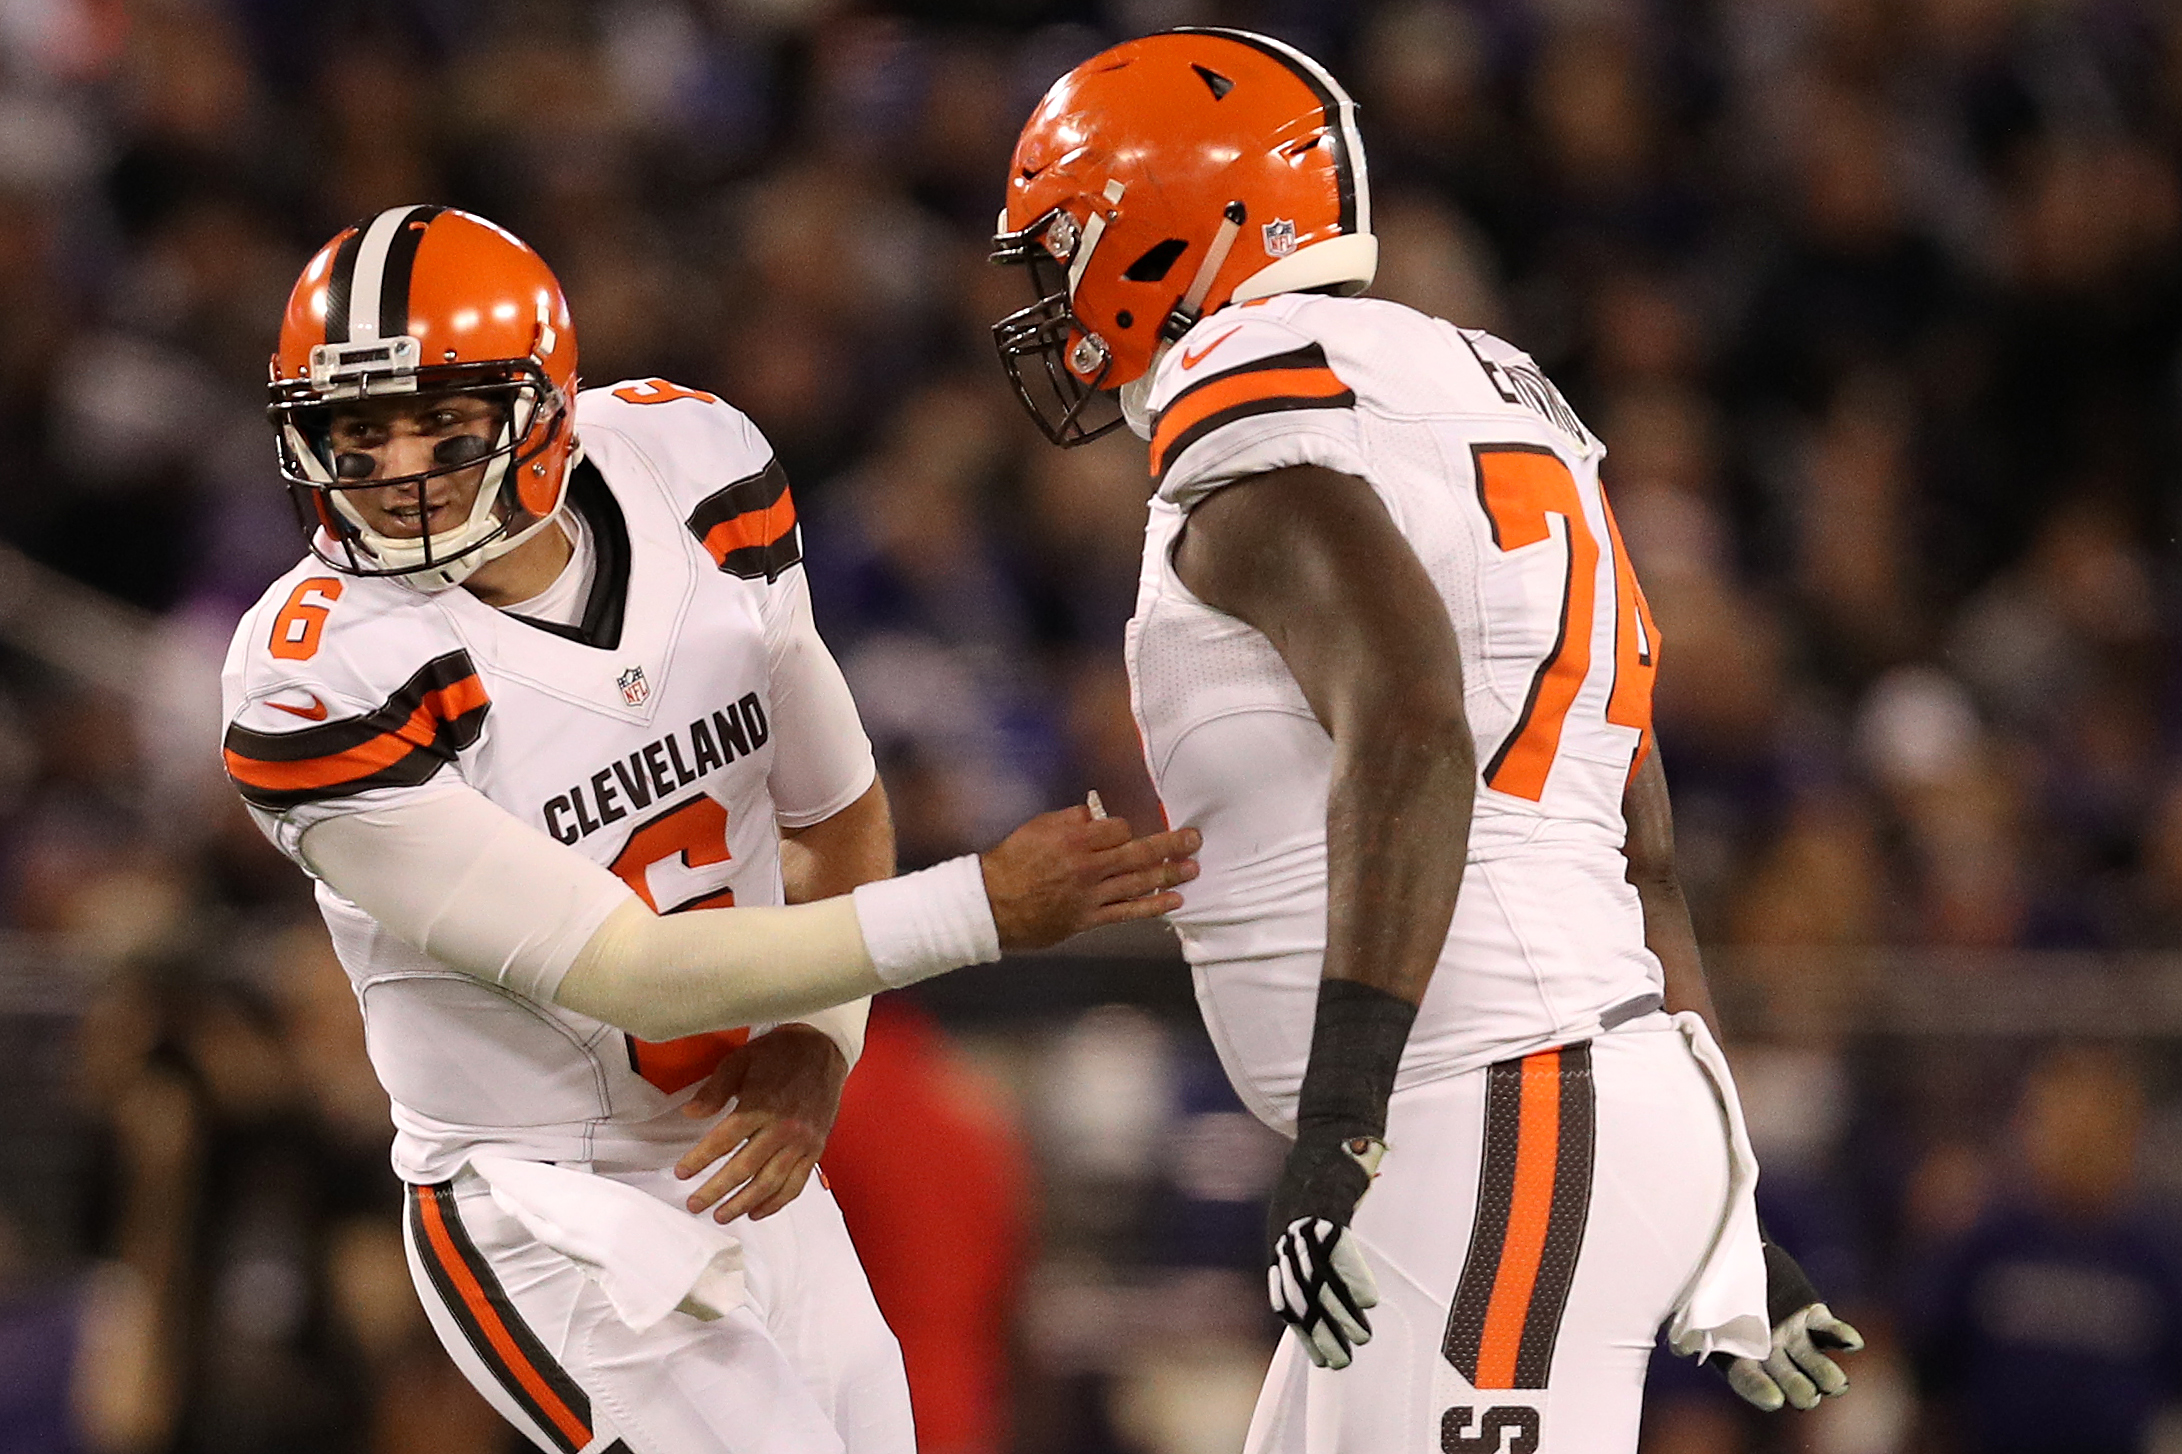 Cameron Erving trade: Chiefs deal 5th round pick to Browns